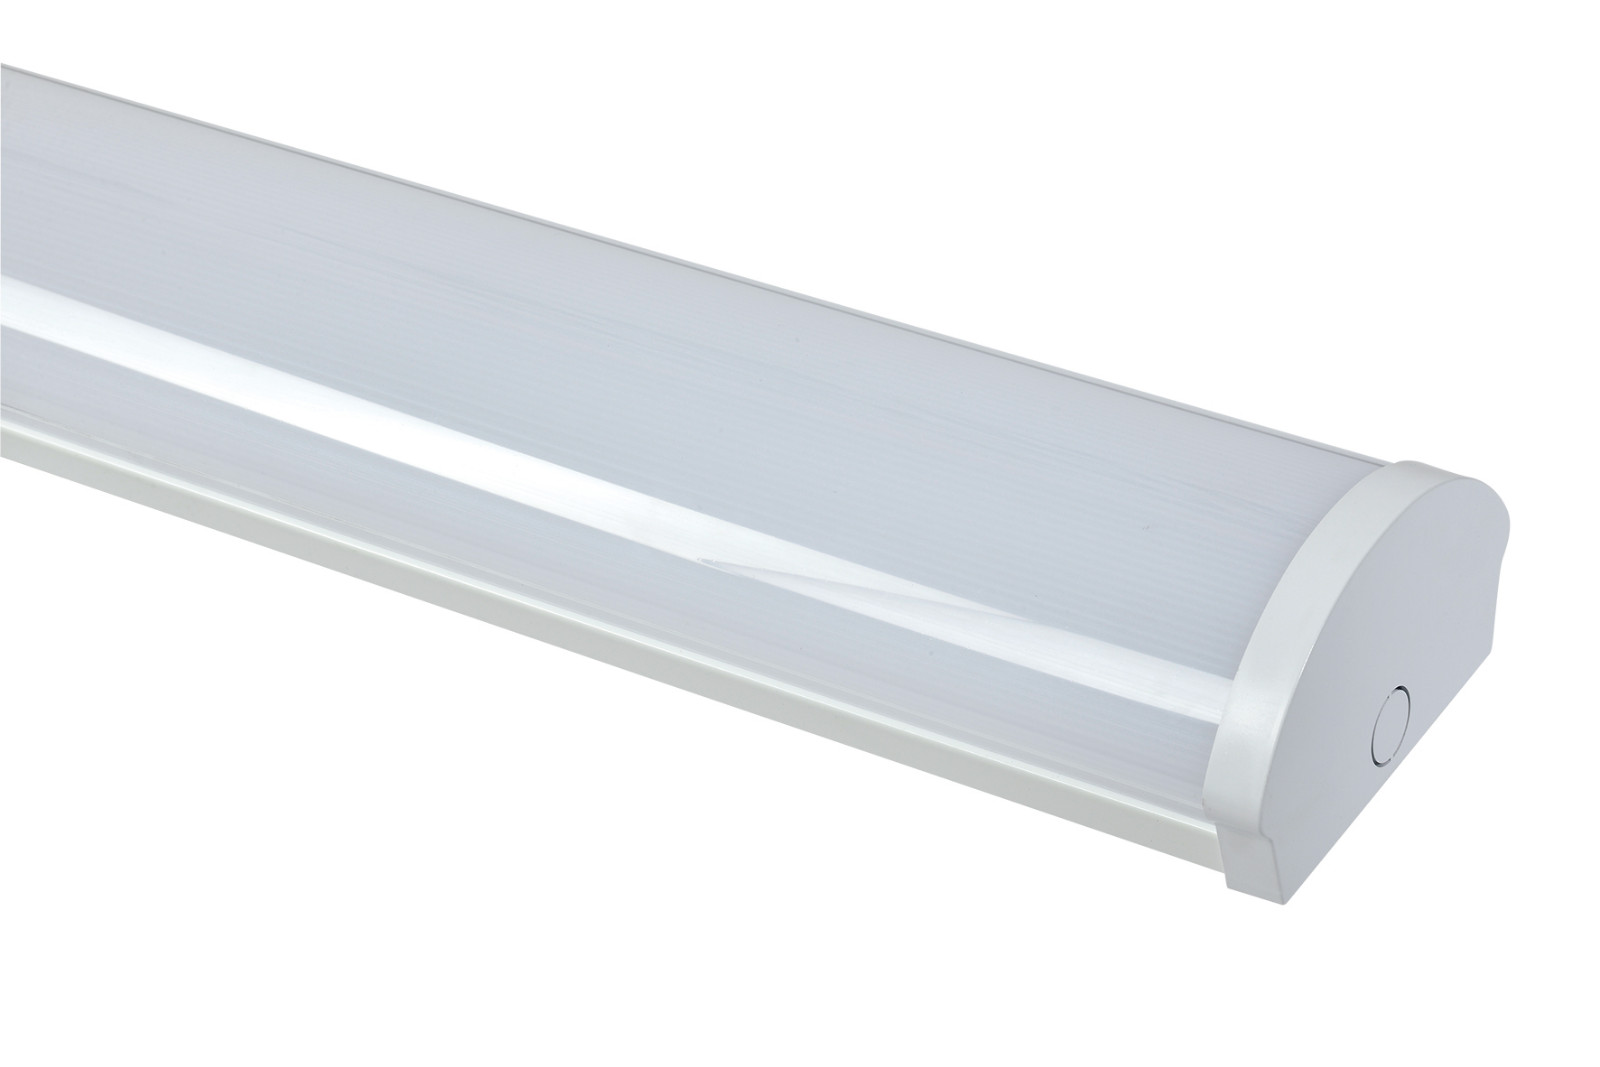 Halcon led tube from China bulk buy-2